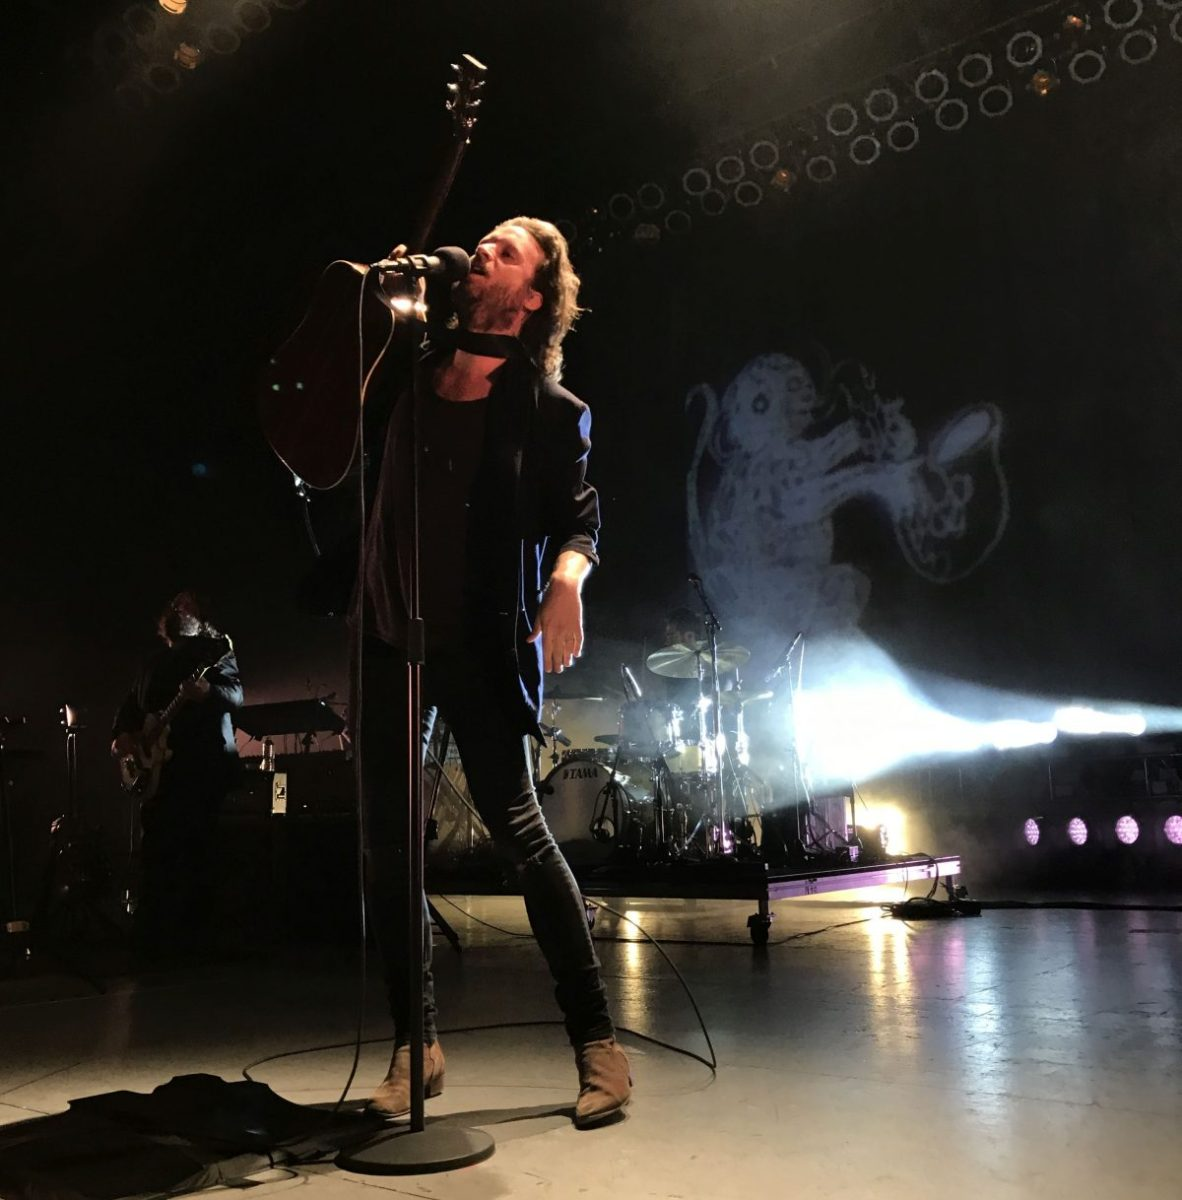 Live Review: Father John Misty - The Greek Theatre, Los Angeles